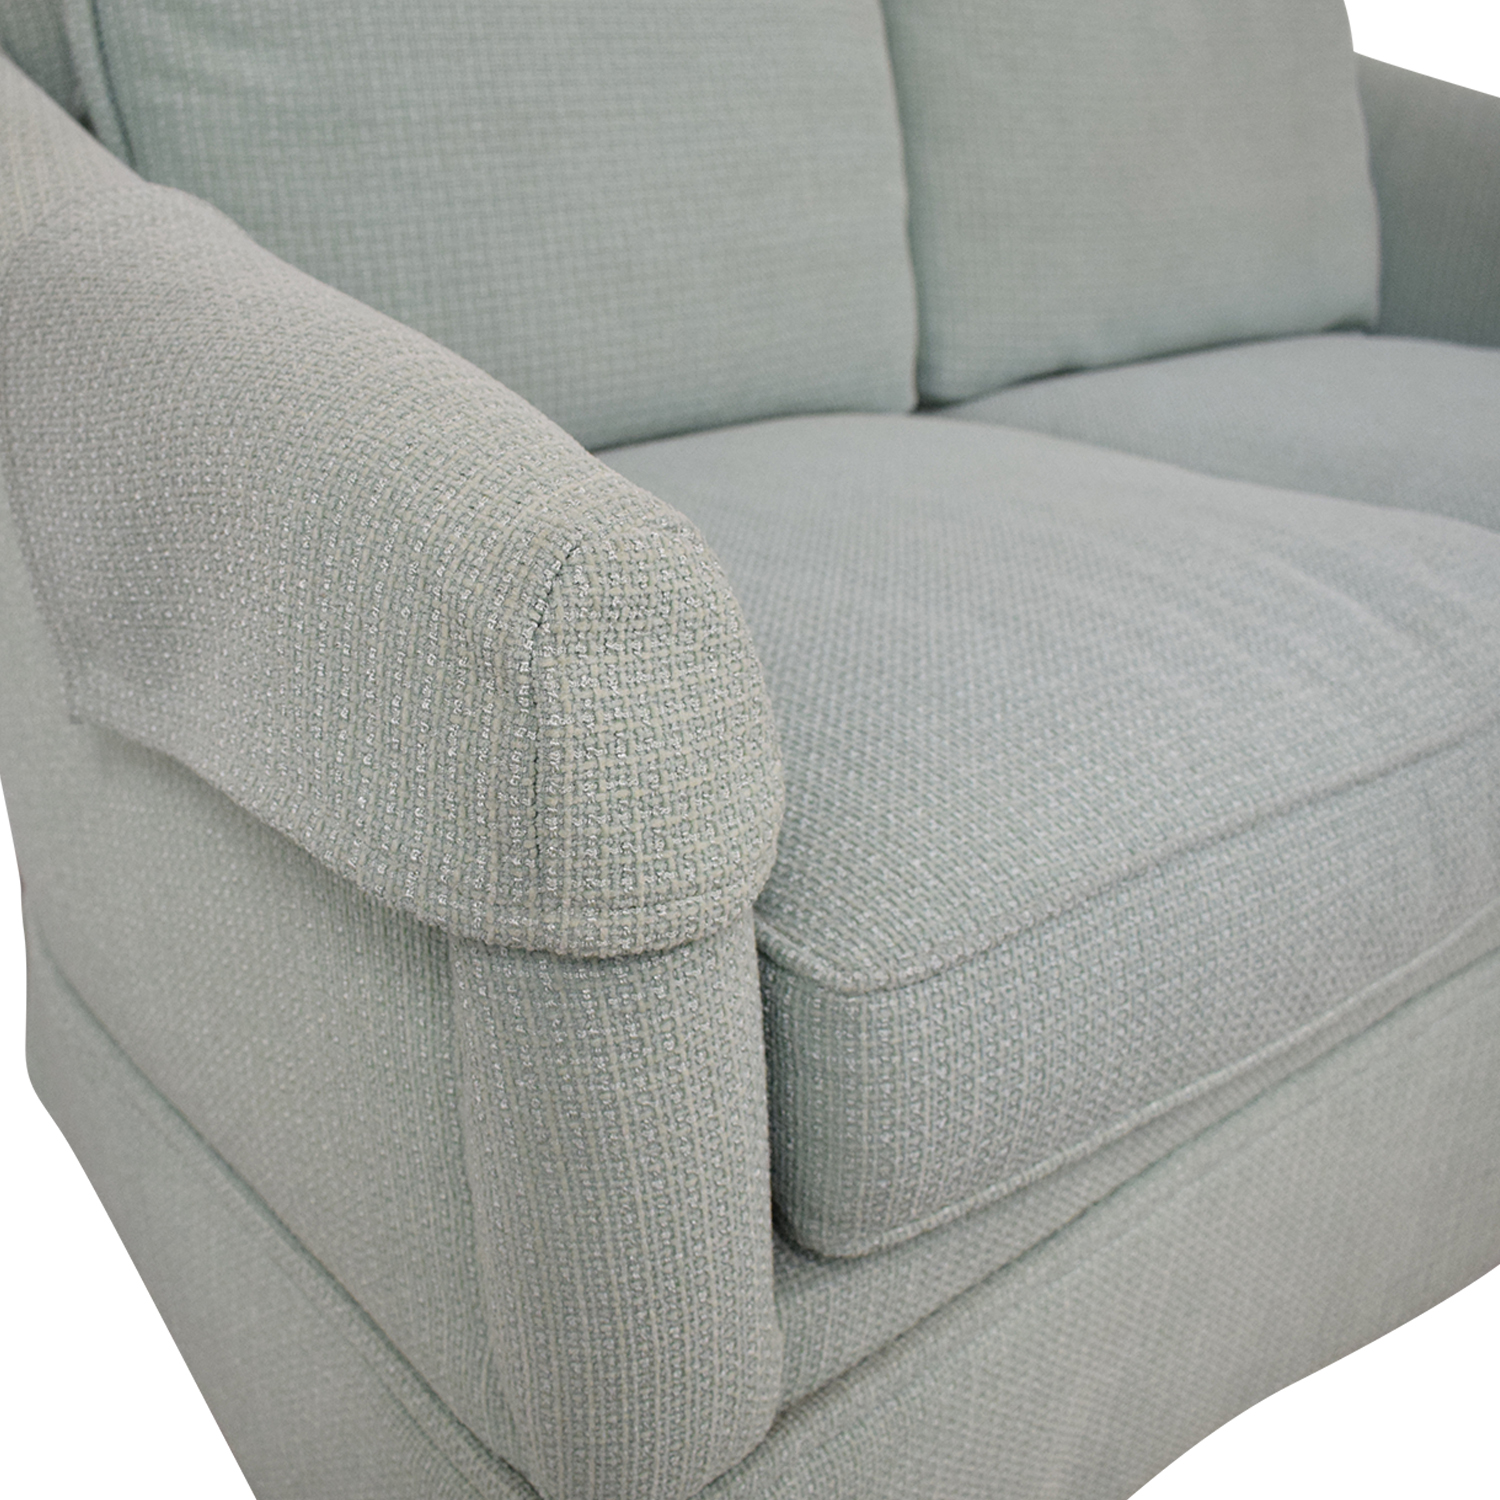 Hickory Chair Hickory Chair Two Cushion Loveseat coupon